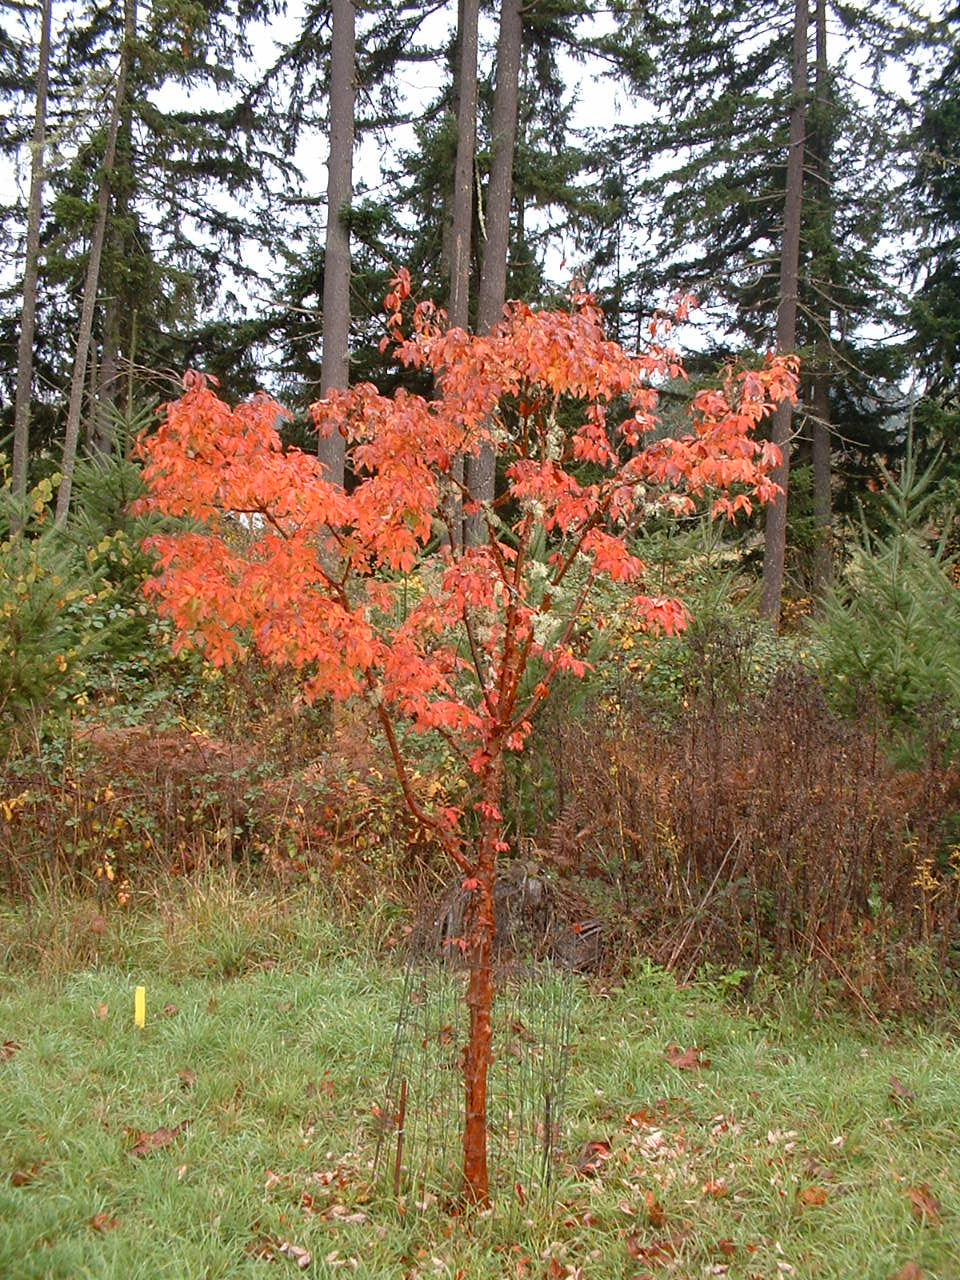 Four Hills of Squash: The Paperbark Maple